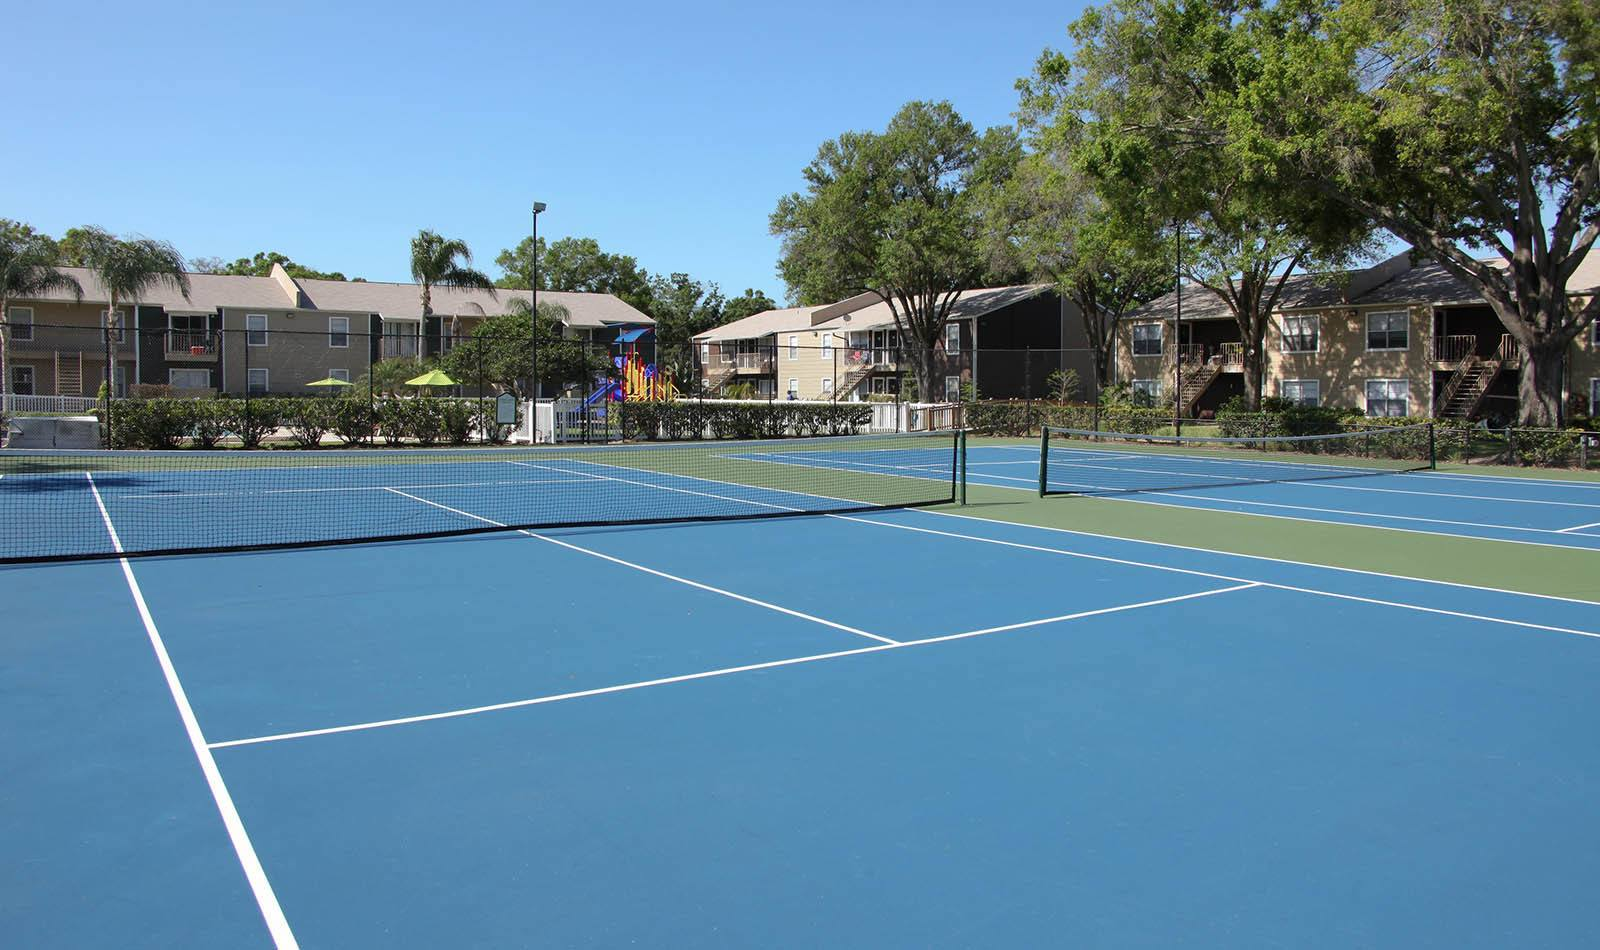 Tennis court at Coopers Pond Apartments in Tampa, FL